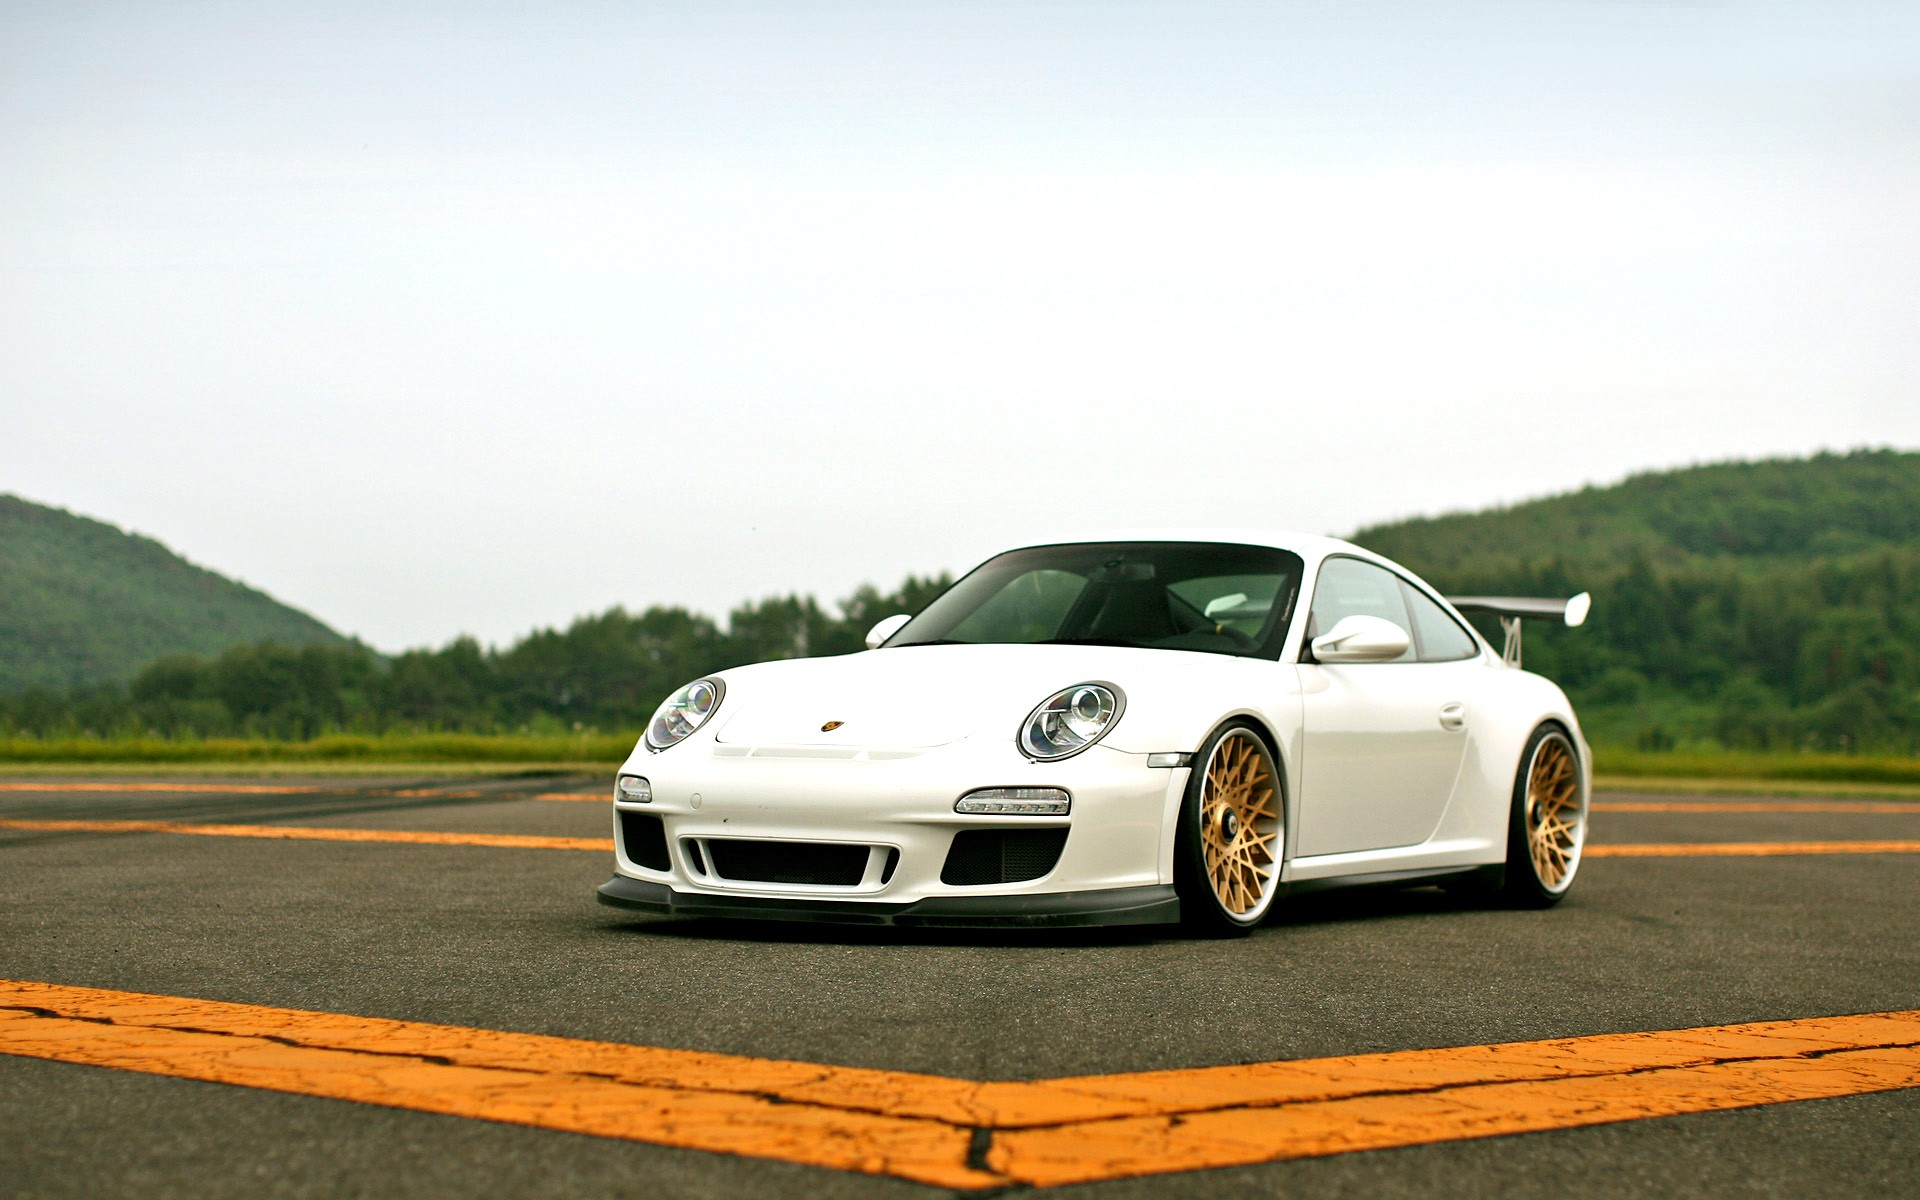 Hoonigan Cars Wallpaper Porsche Gt3 Rs Wallpaper Hd Car Wallpapers Id 3041